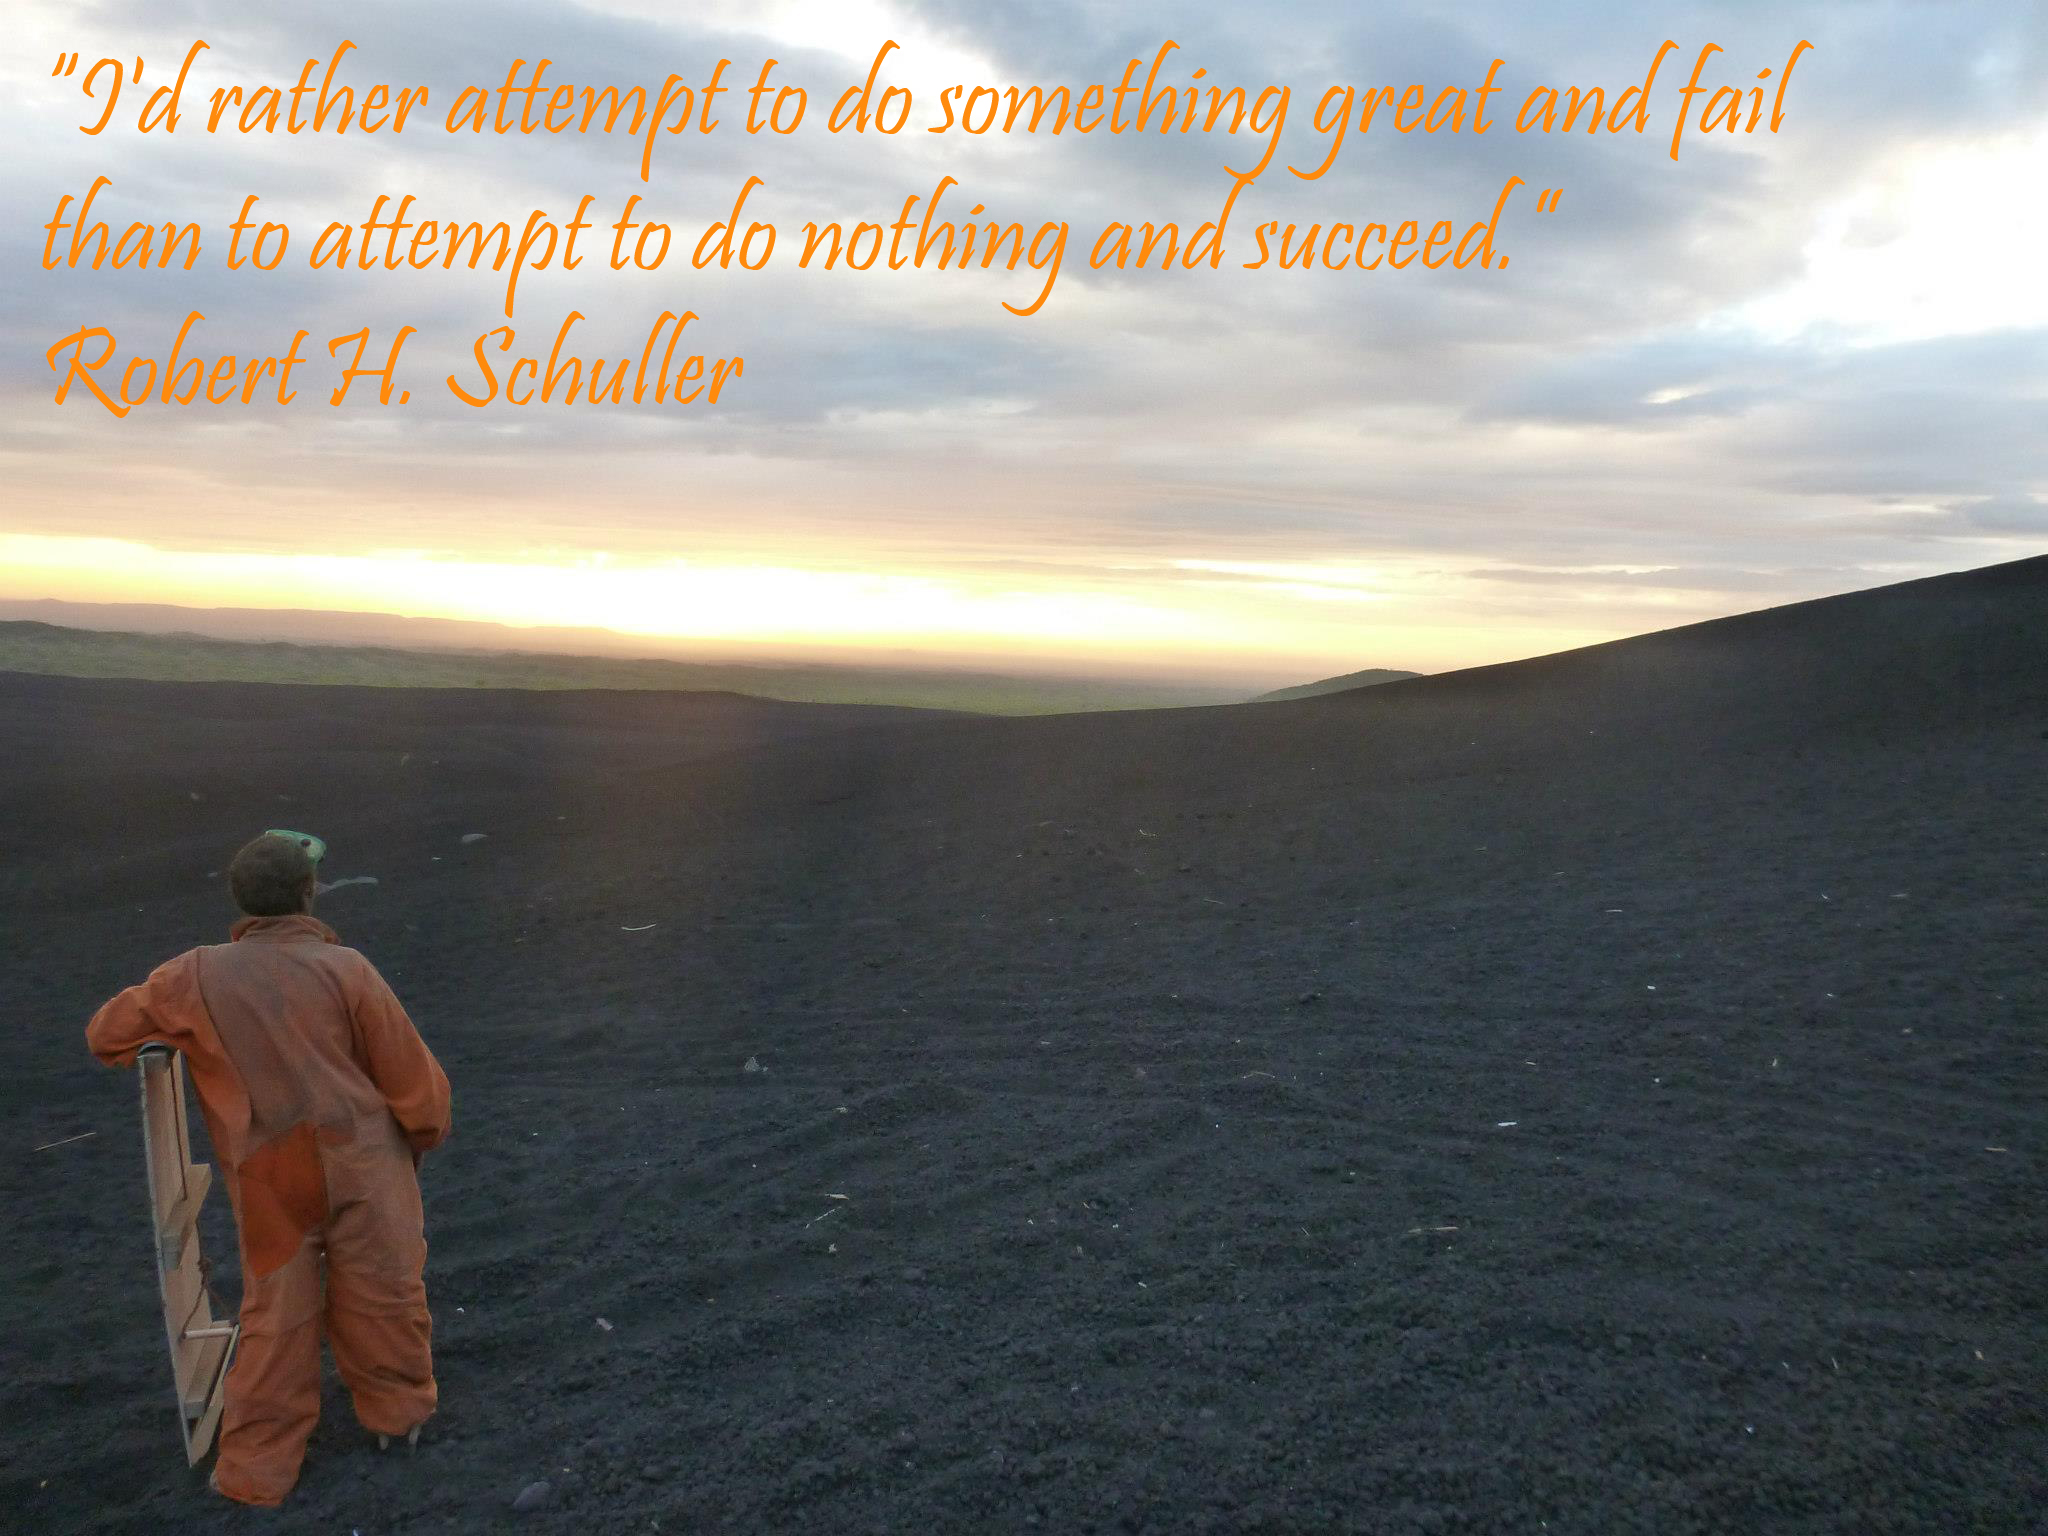 """I'd rather attempt to do something great ..."